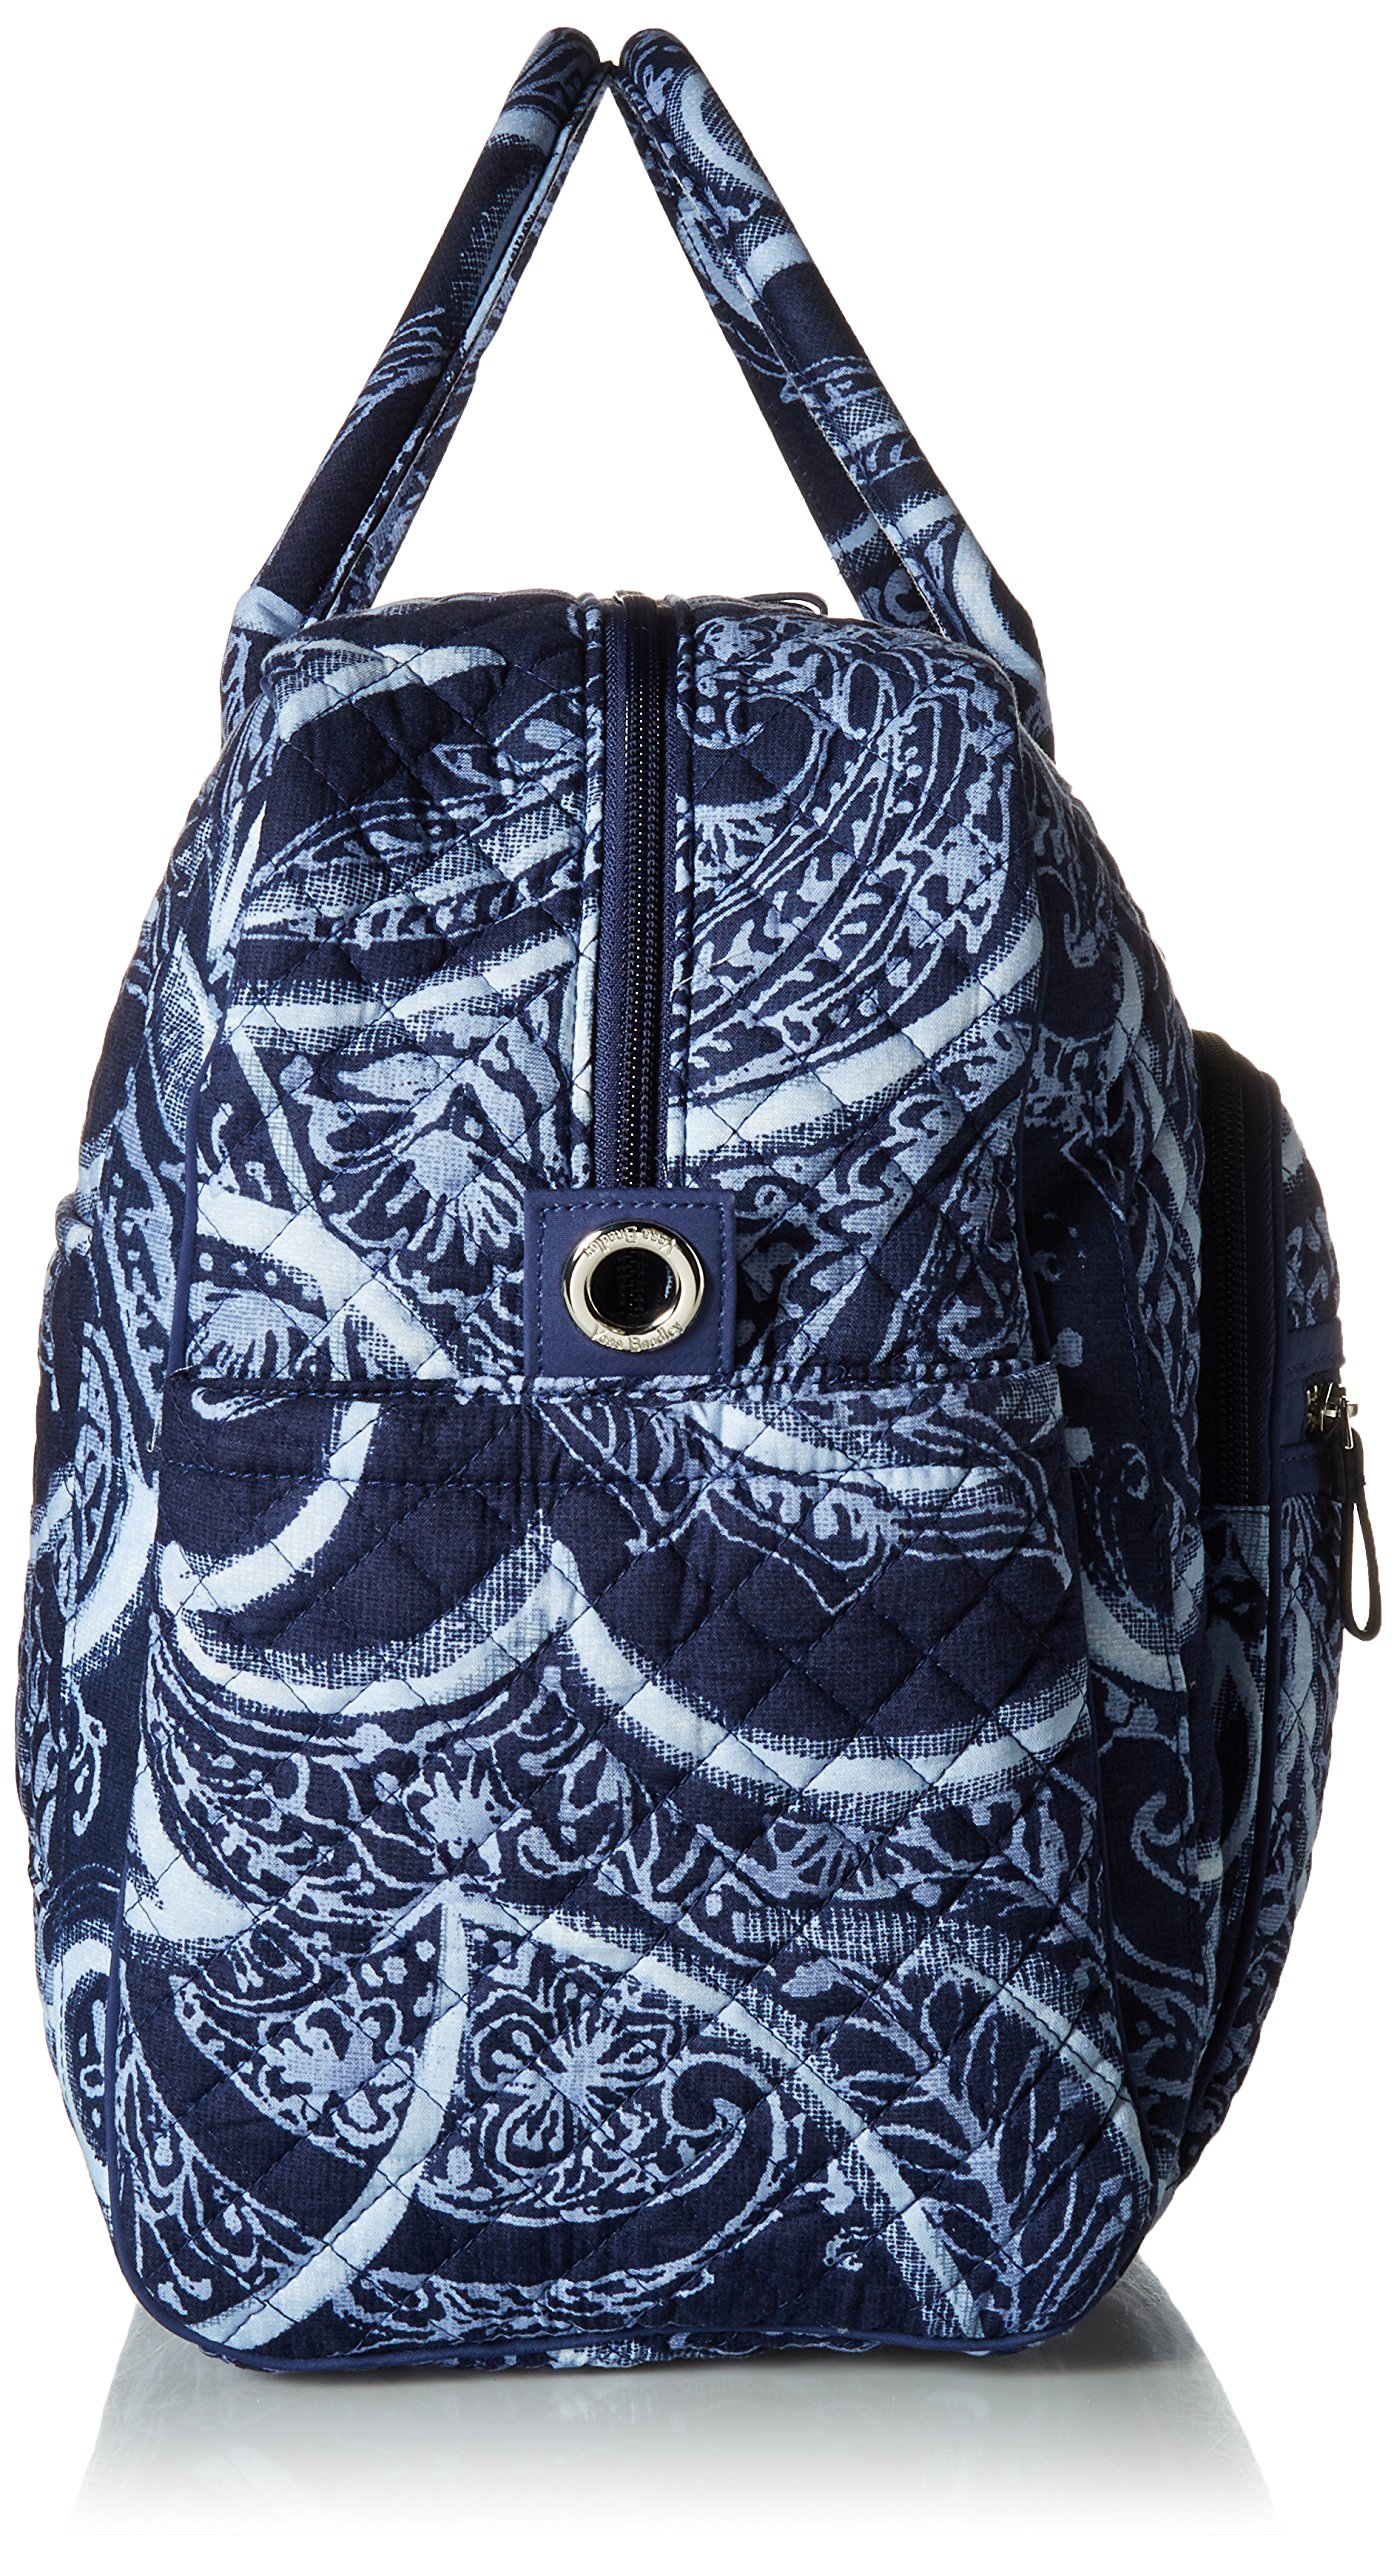 Vera Bradley Iconic Weekender Travel Bag, Signature Cotton, Indio by Vera Bradley (Image #3)